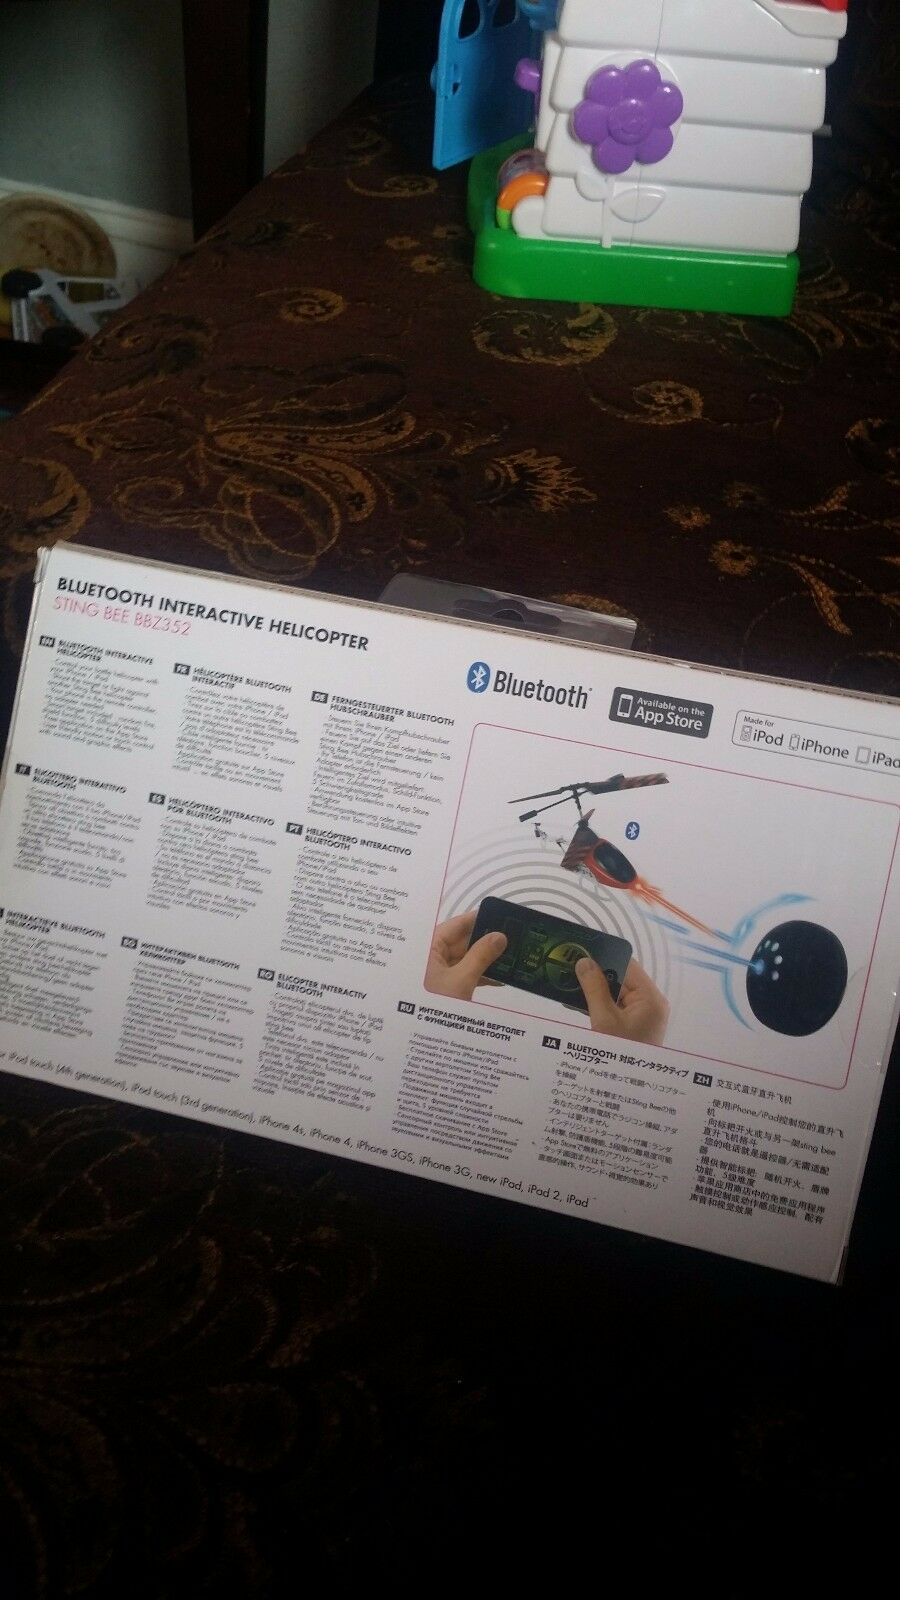 BeeWi BeeWi BeeWi StingBee  blueetooth Phone Remote Control Interactive Helicopter For Apple 91265c